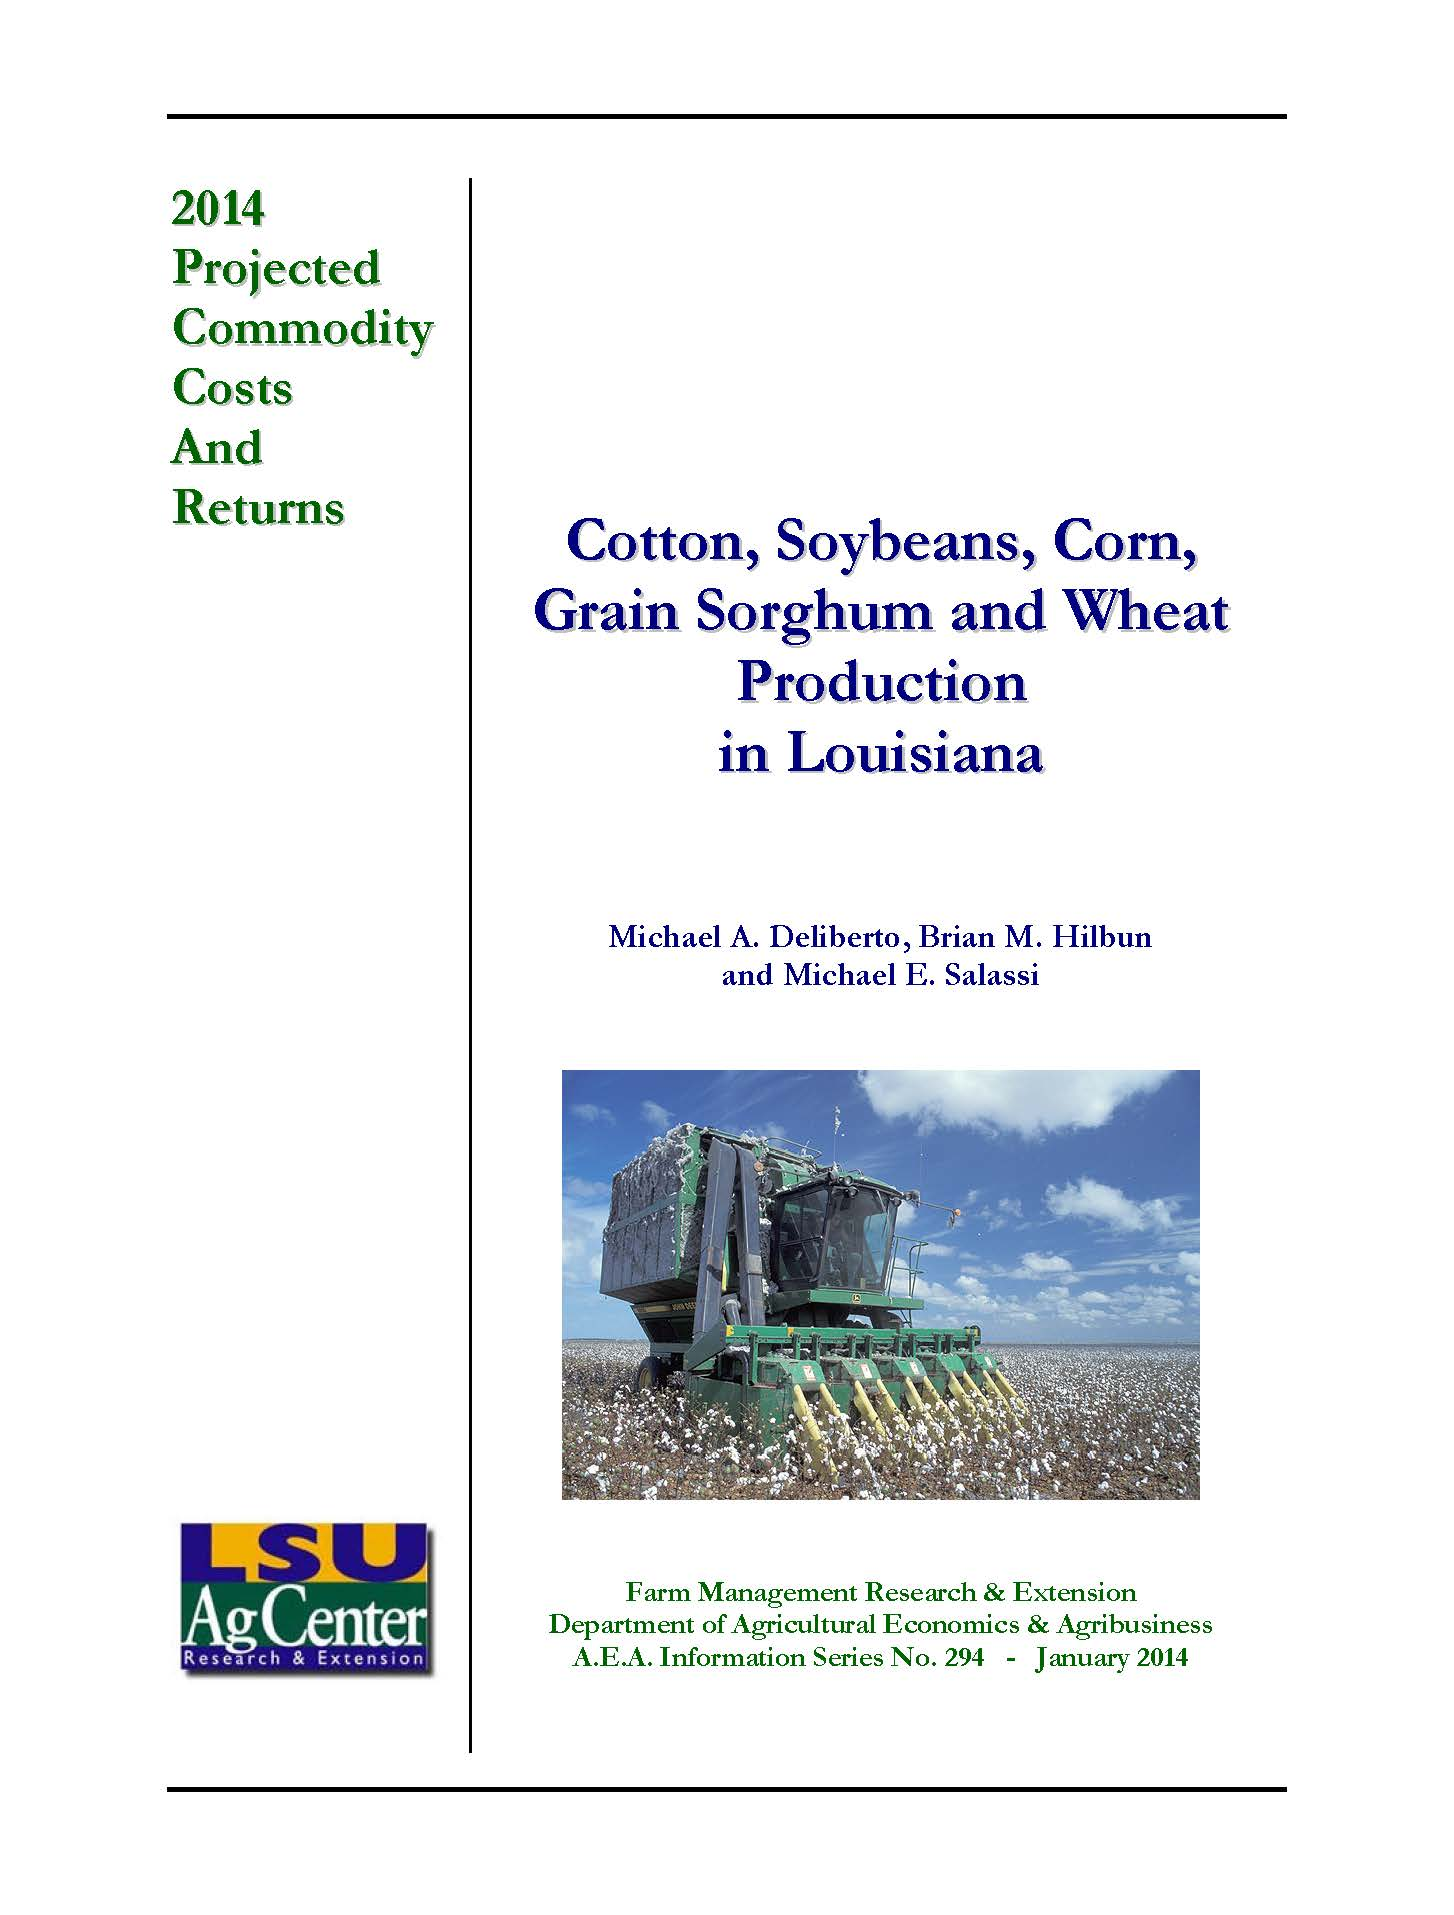 Projected Production Costs for Cotton Soybeans Corn Grain Sorghum and Wheat Production in Louisiana 2014